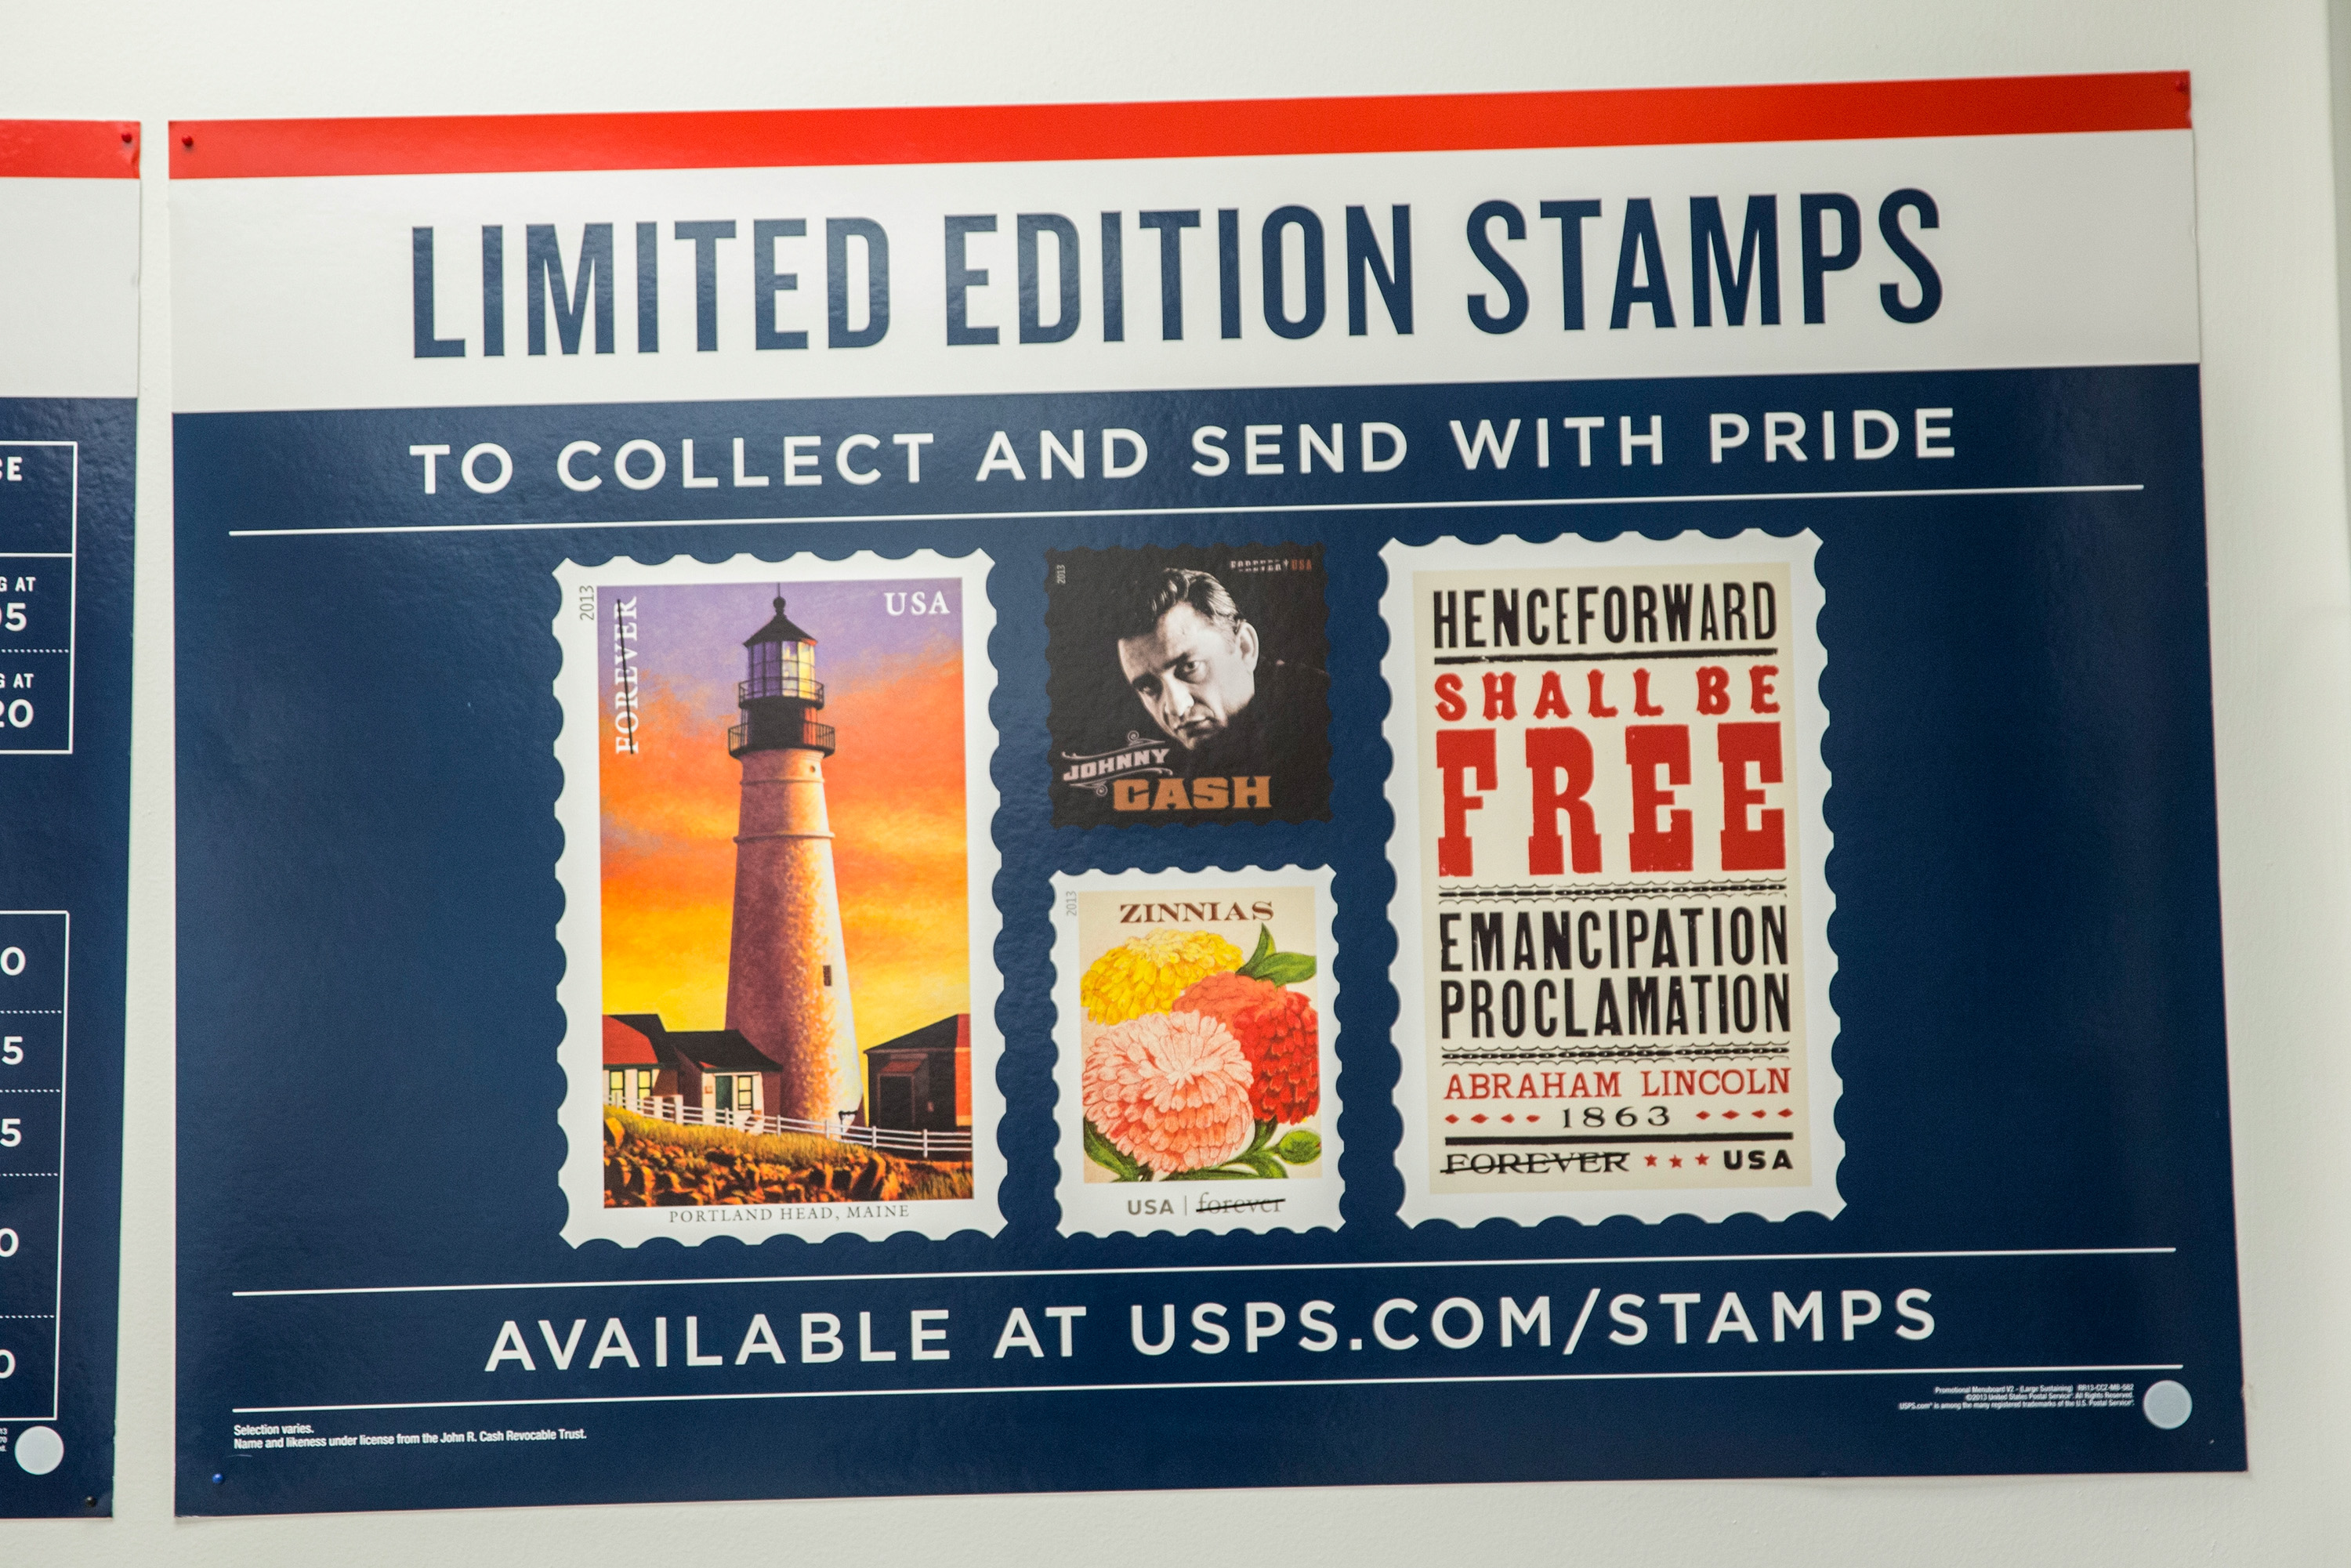 Usps Forever Stamp Price Increase New Postage Rates 2019